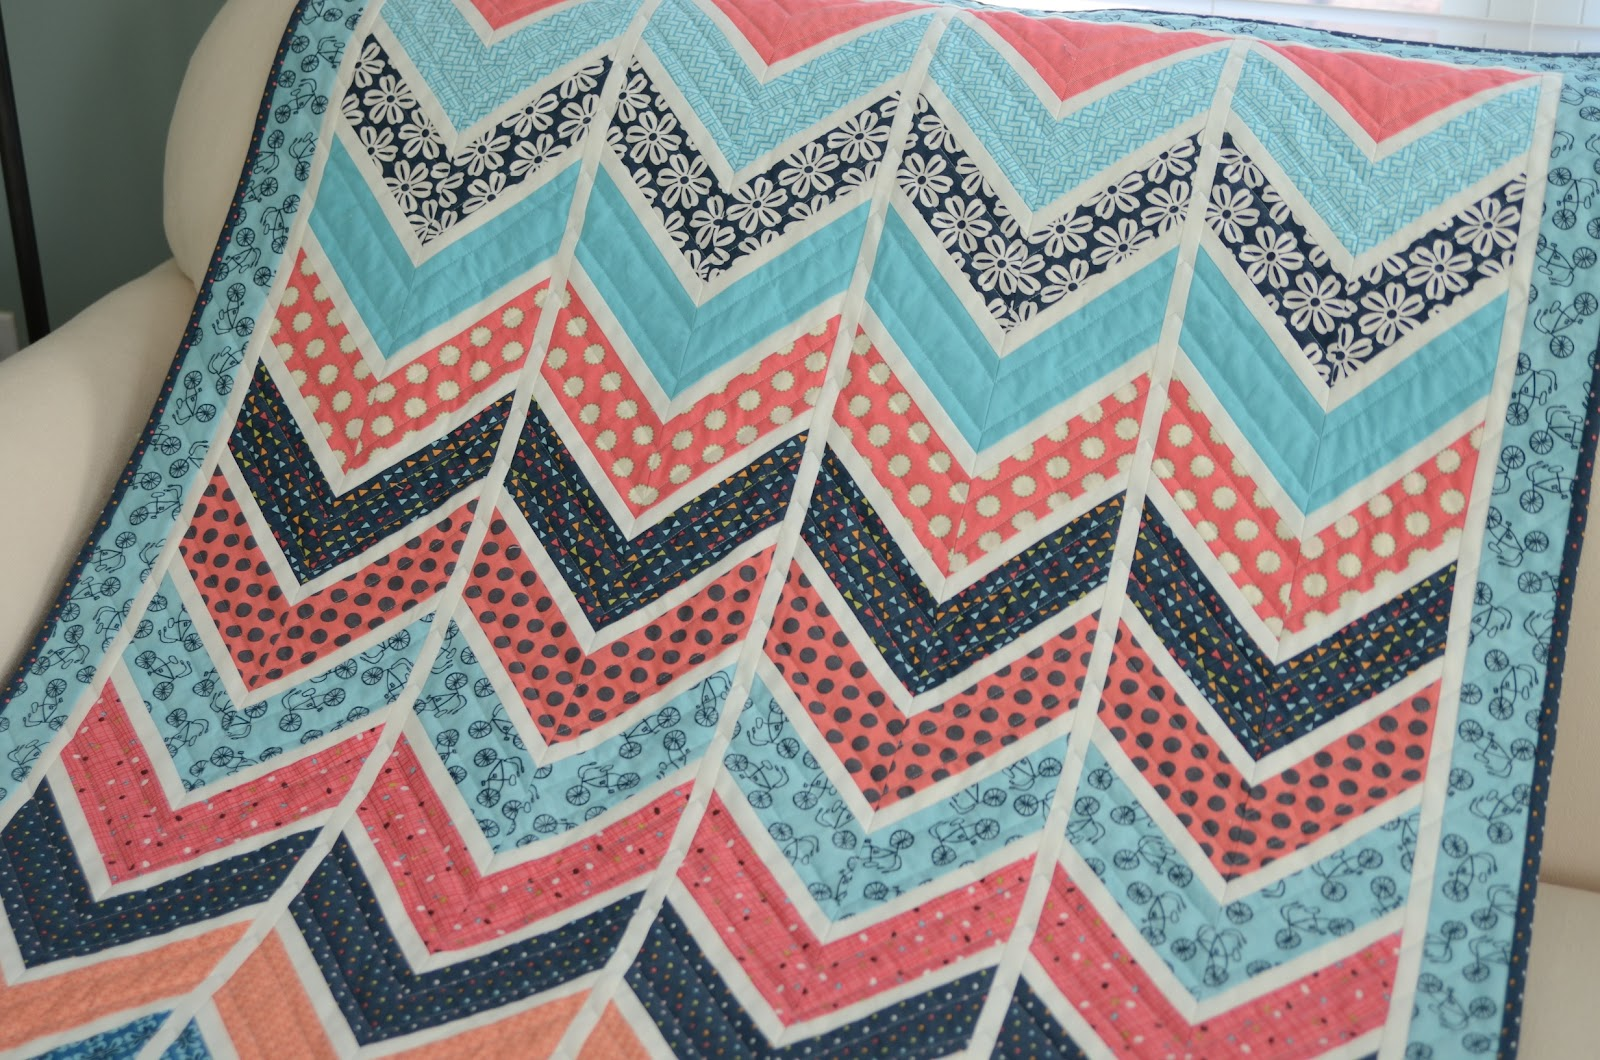 Hyacinth Quilt Designs: Baby Chevron Quilt : chevron quilt patterns - Adamdwight.com